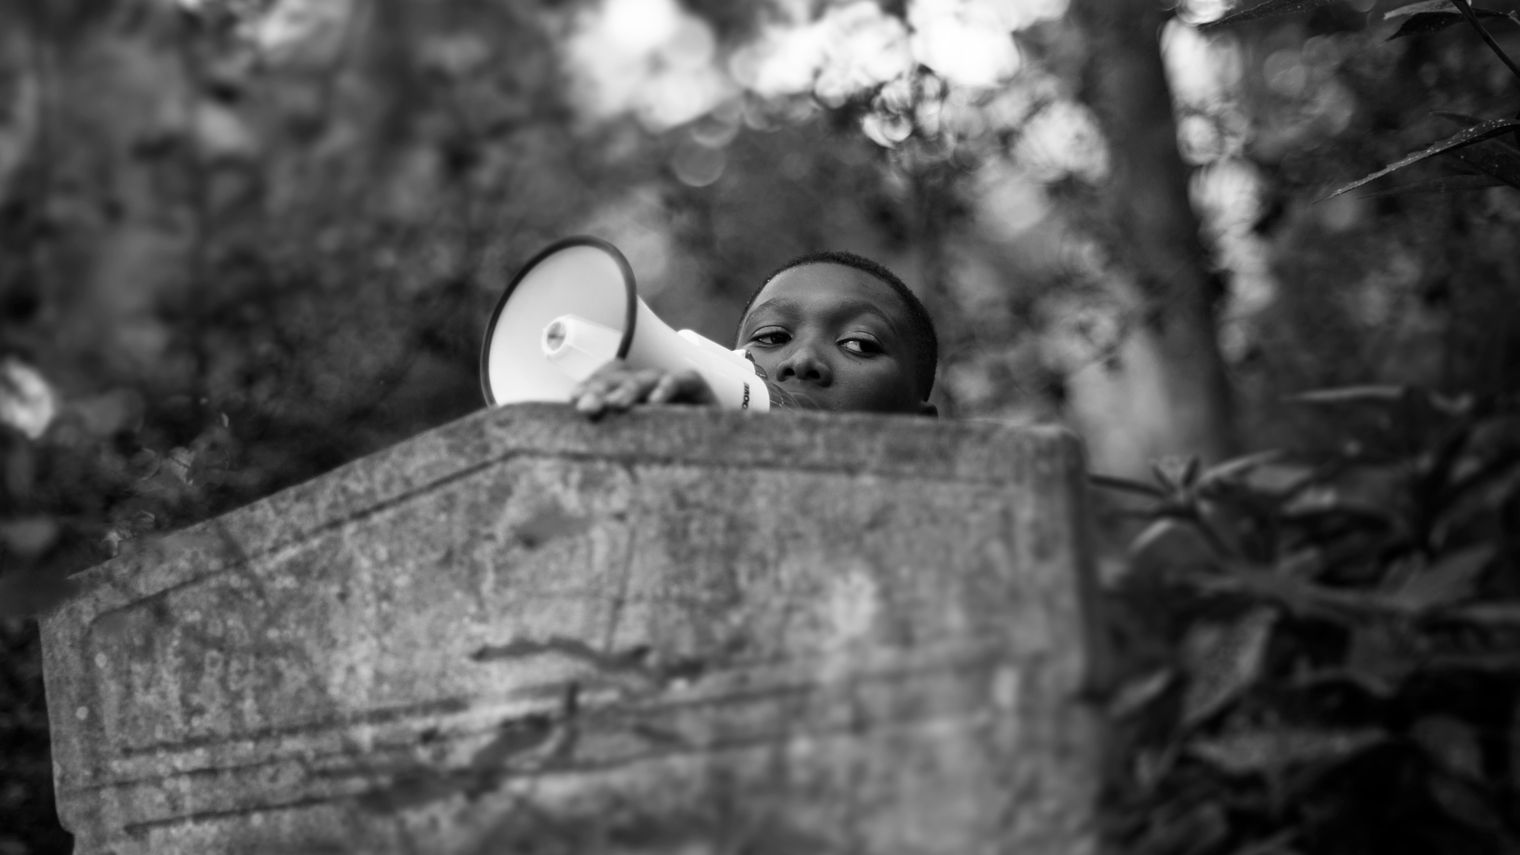 A teenager with a megaphone emerging from behind a gravestone.